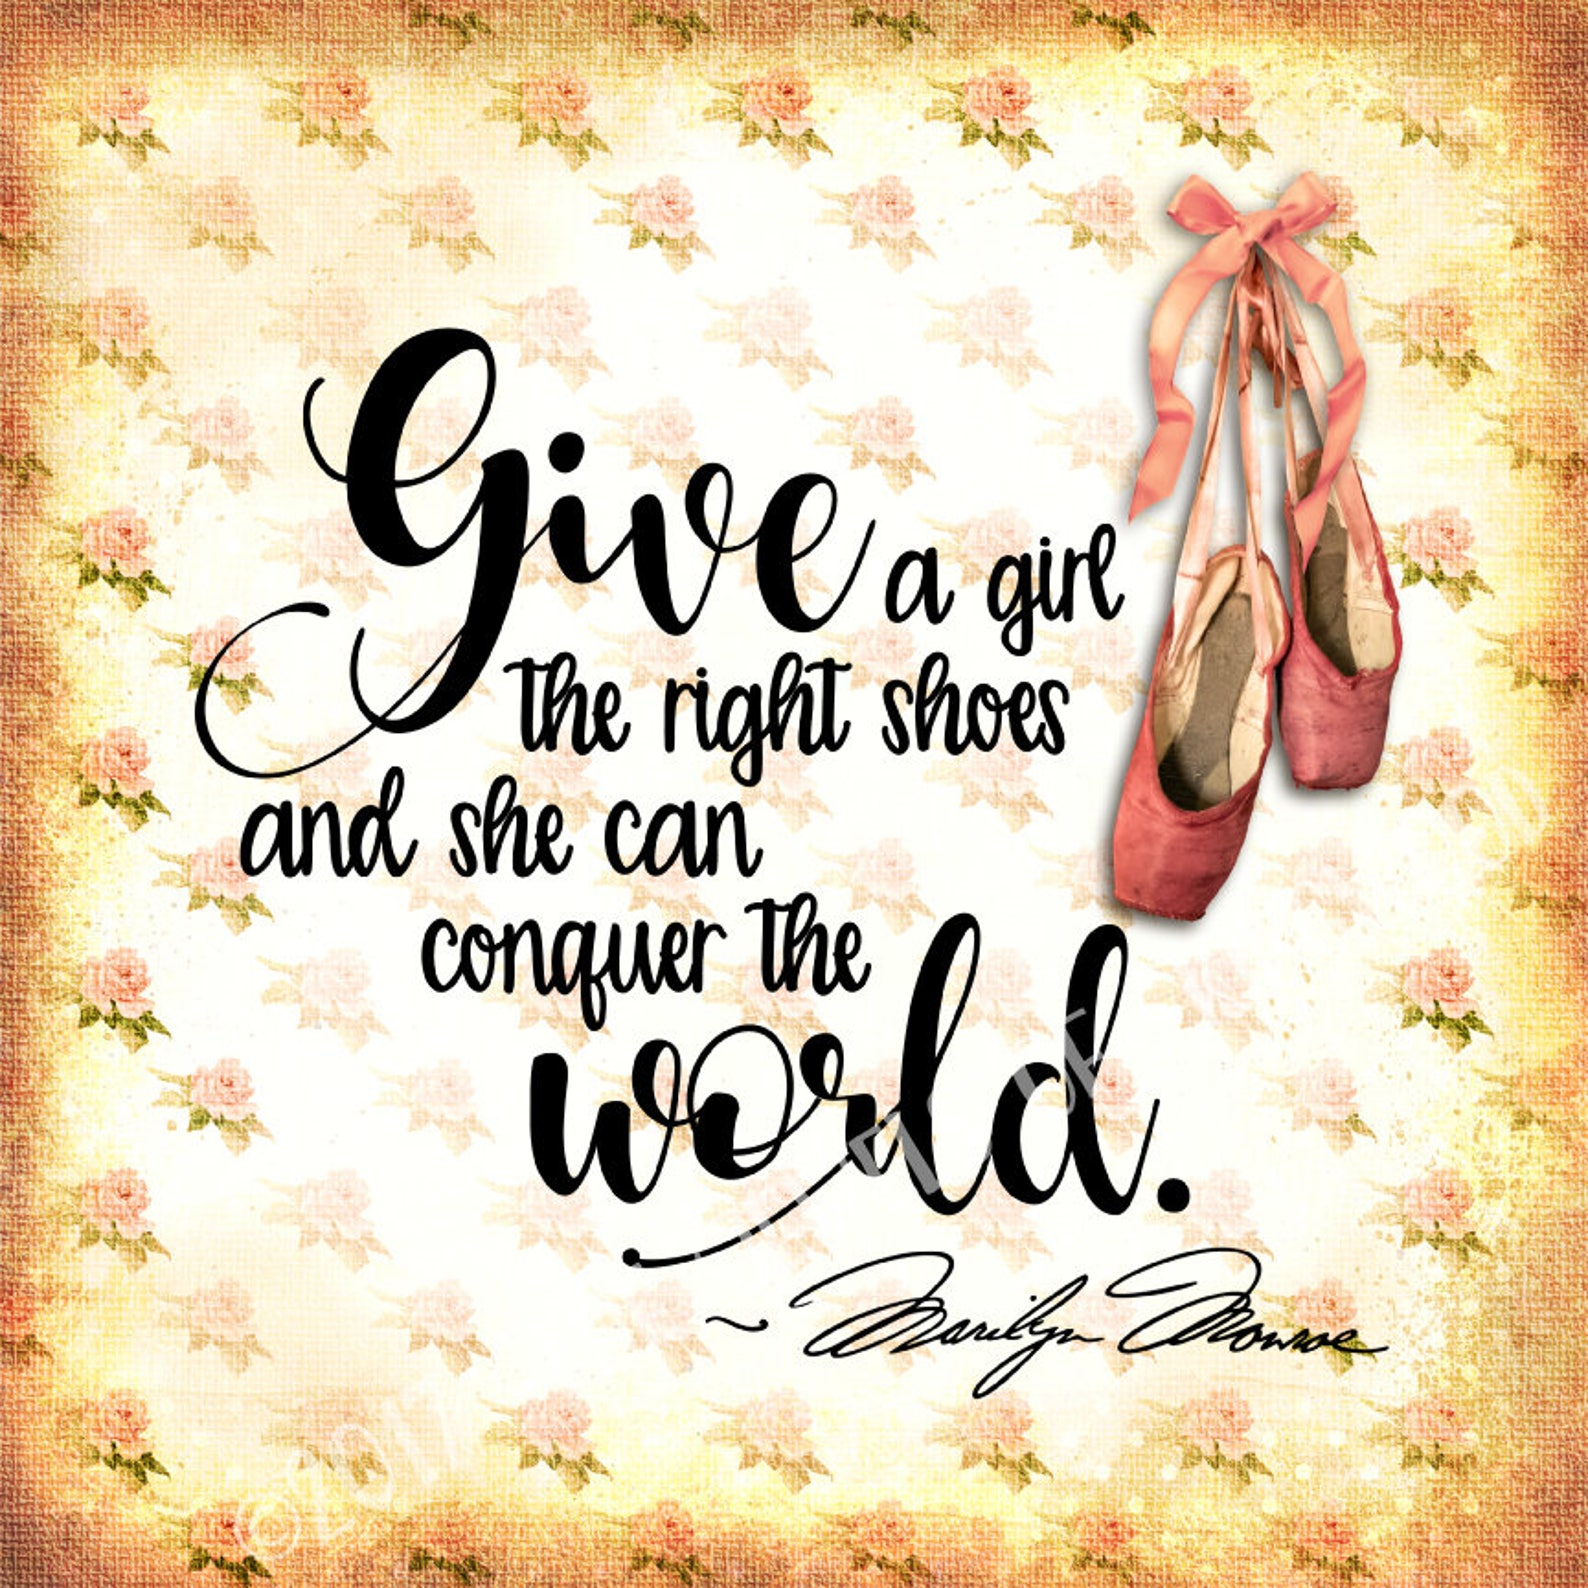 motivational marilyn monroe quote give a girl the right shoes ballet shoes print best graduation gift dance teacher gift art for